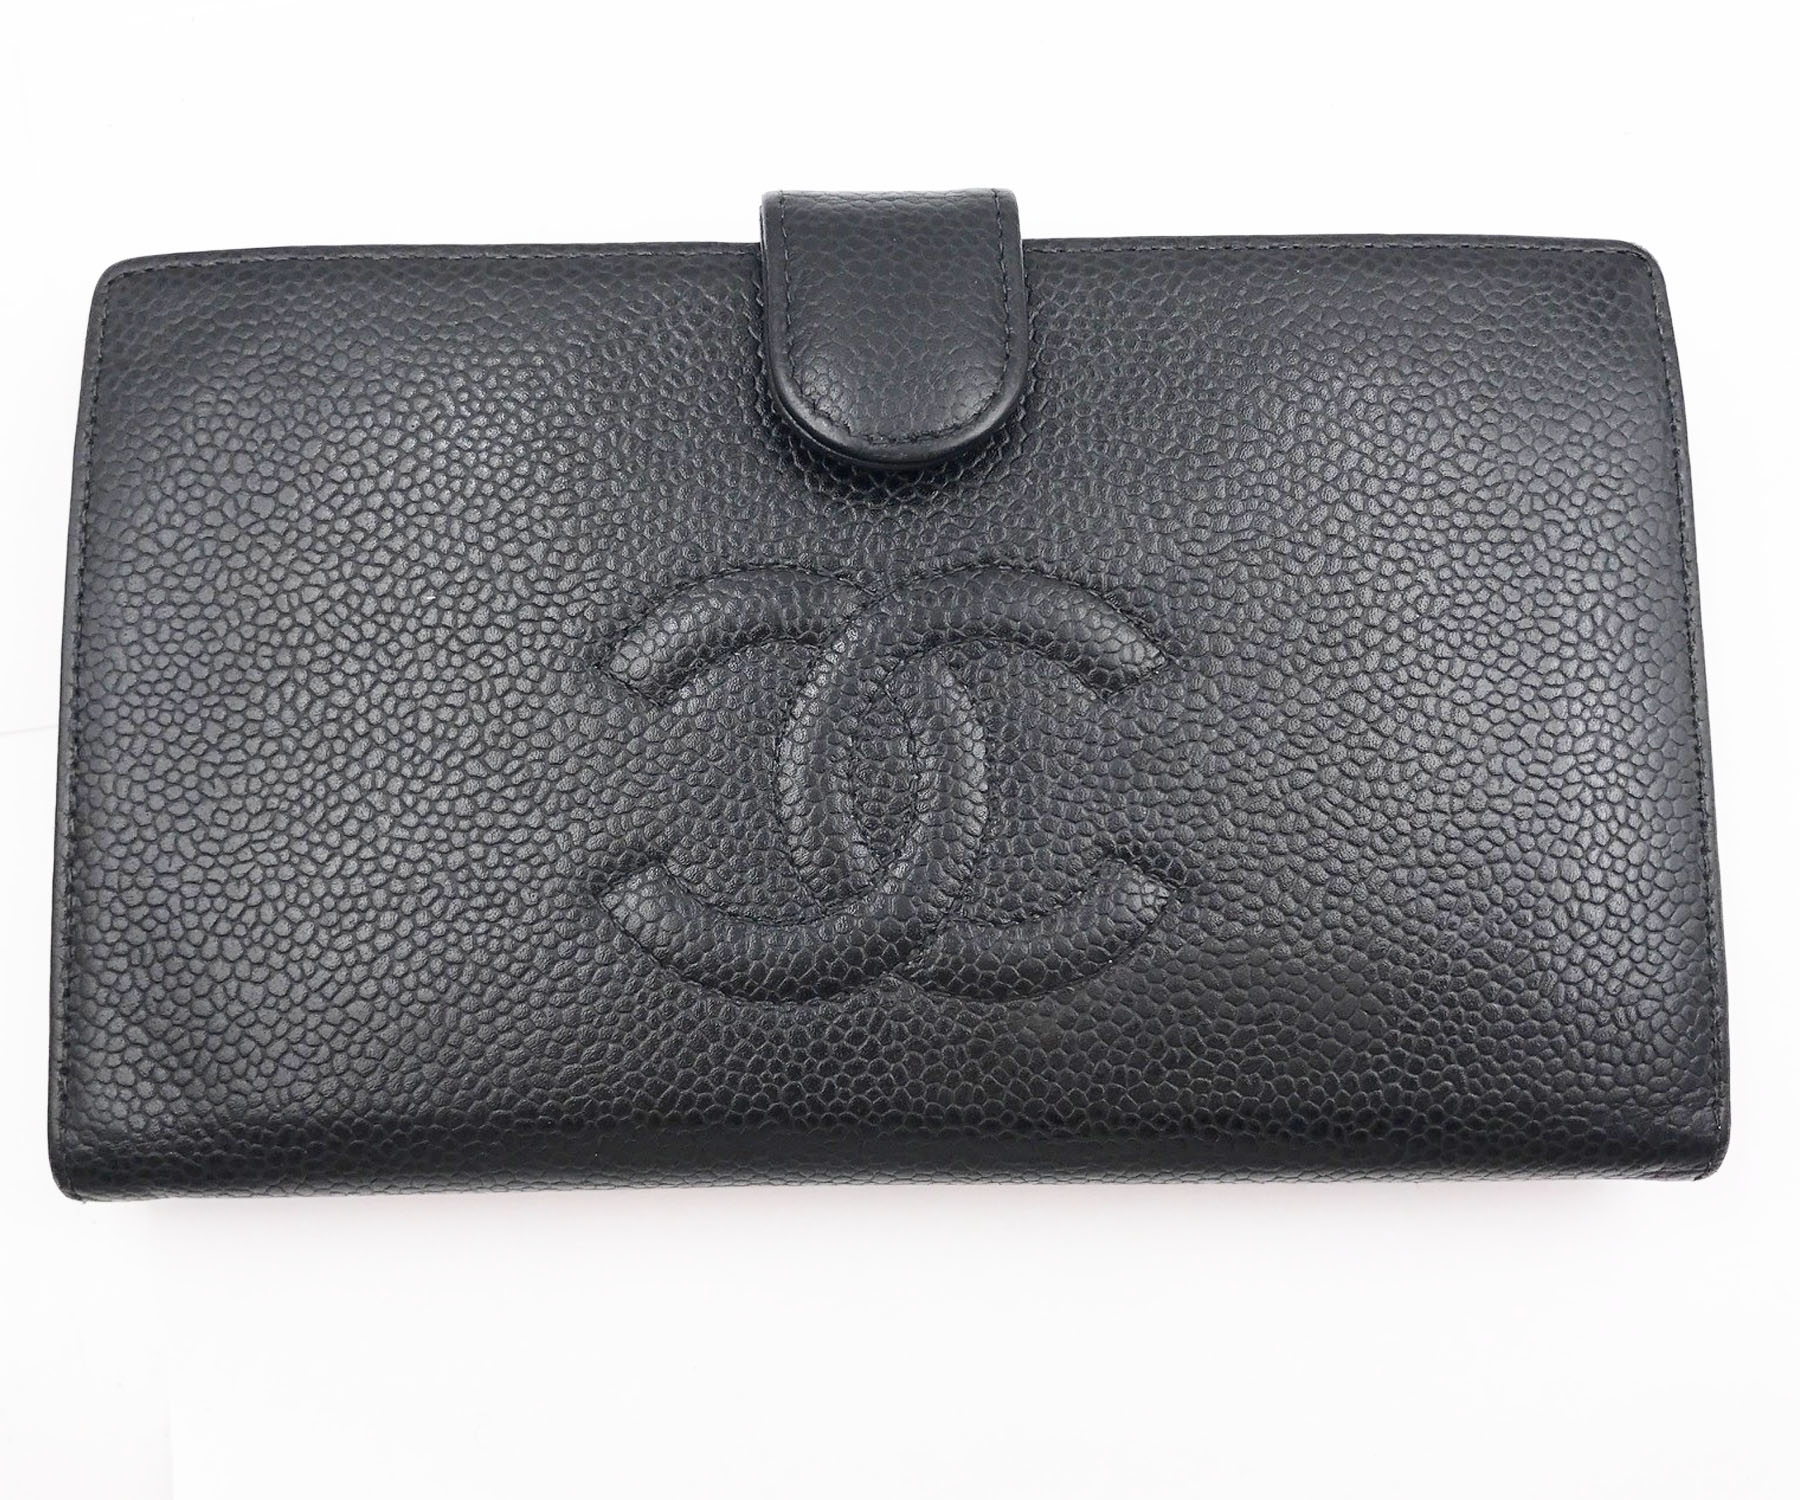 d1b30c87c18e Chanel Classic Caviar Long Wallet | Stanford Center for Opportunity ...